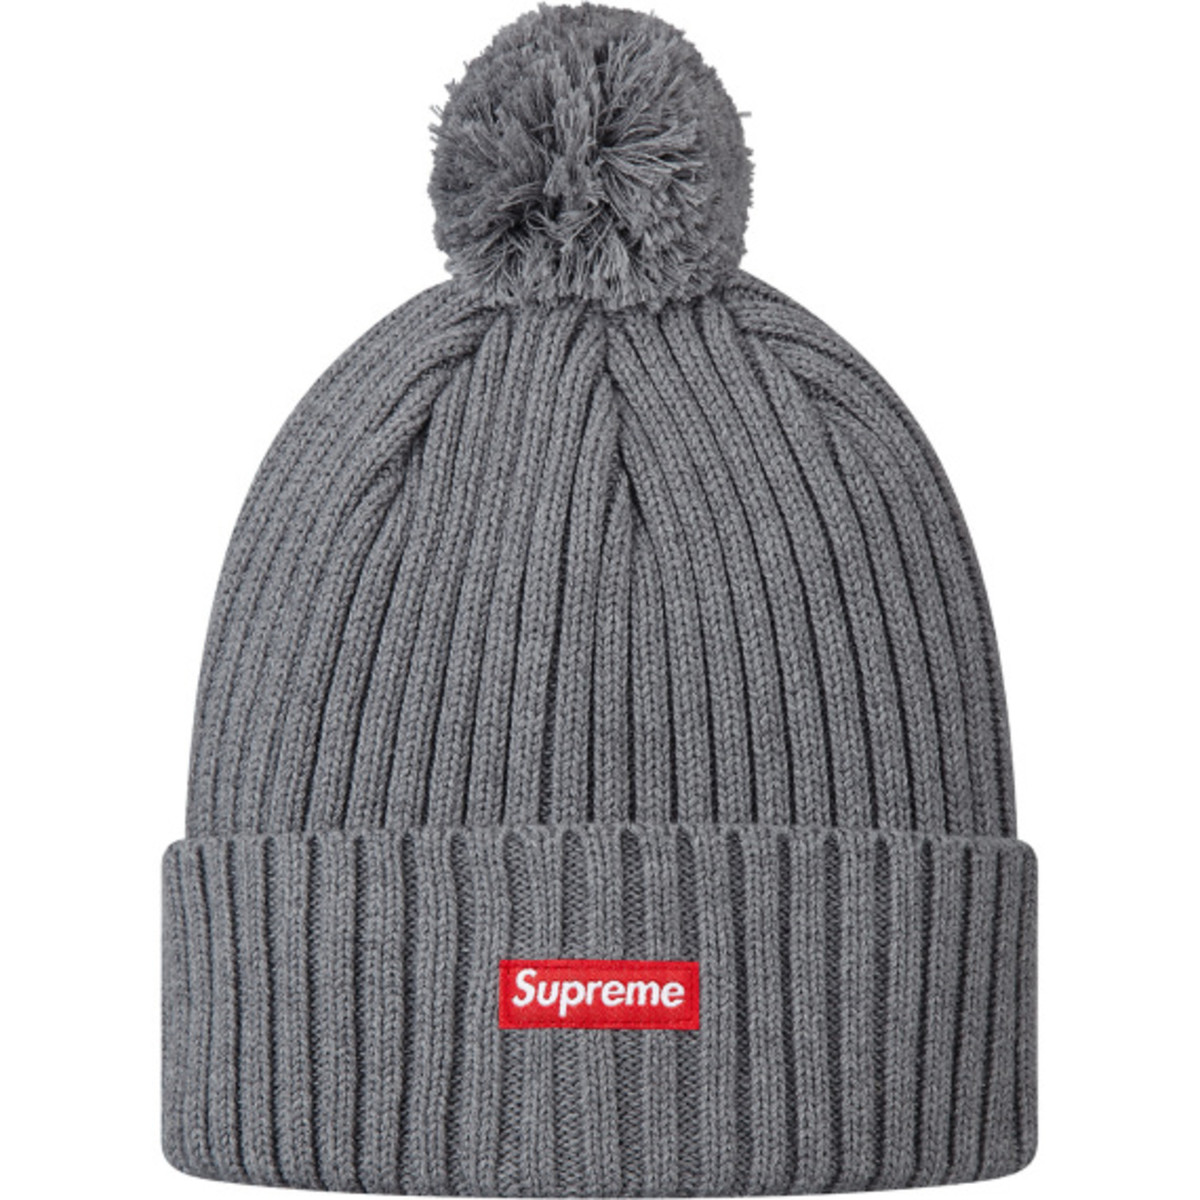 Supreme Ribbed Beanie | Available Now - 2